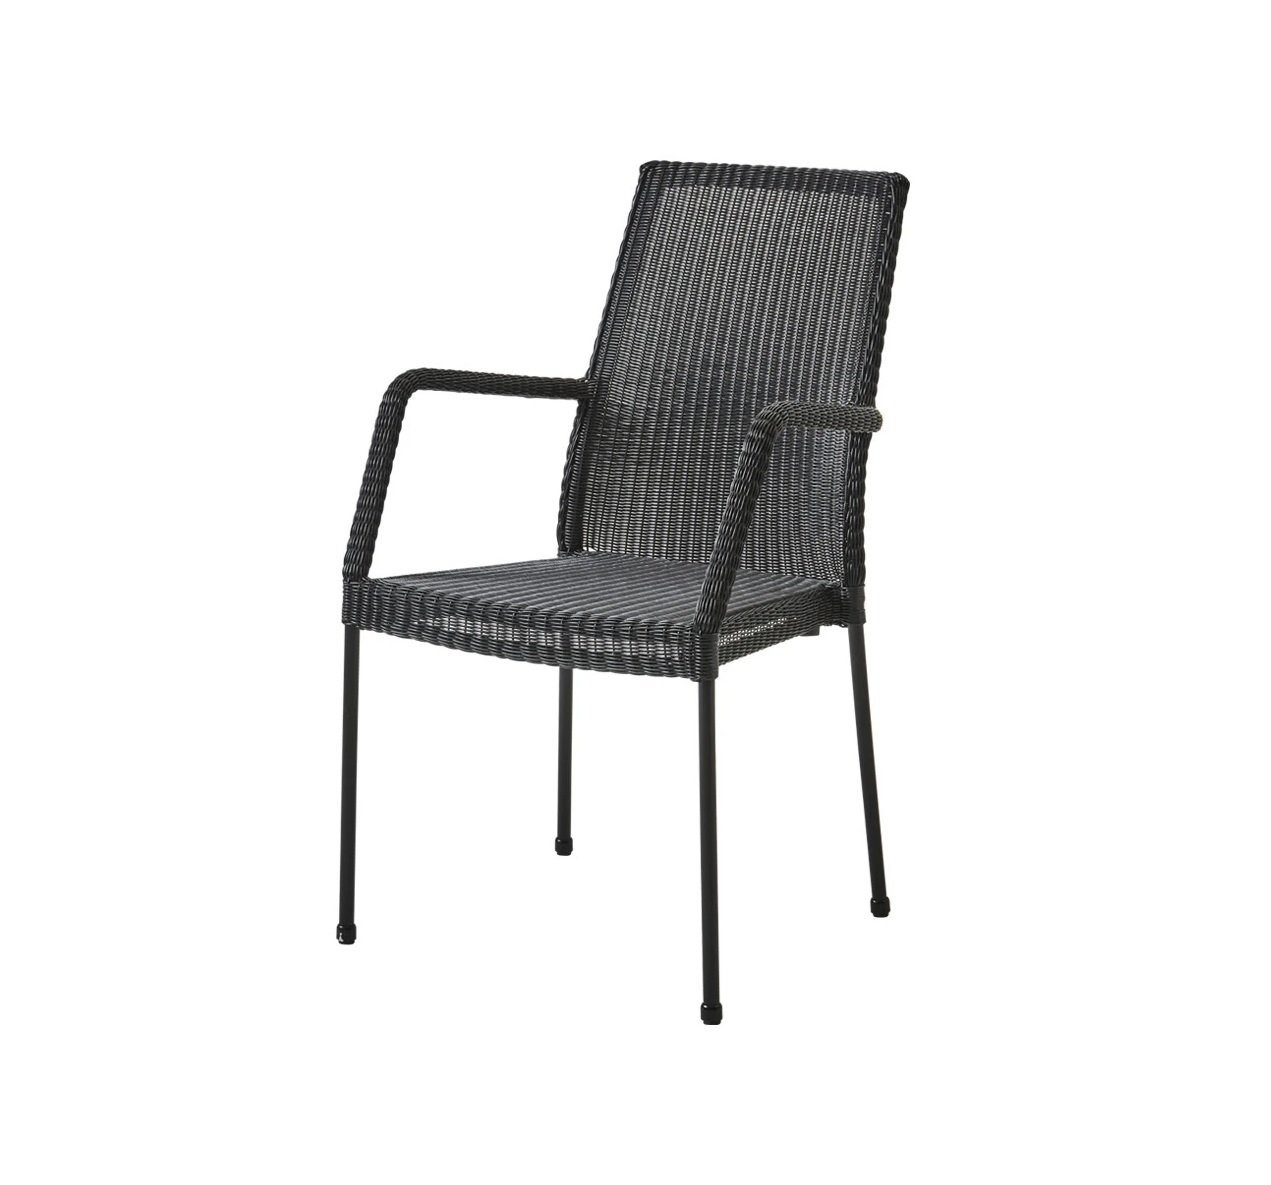 Newport Armchair from Cane-line